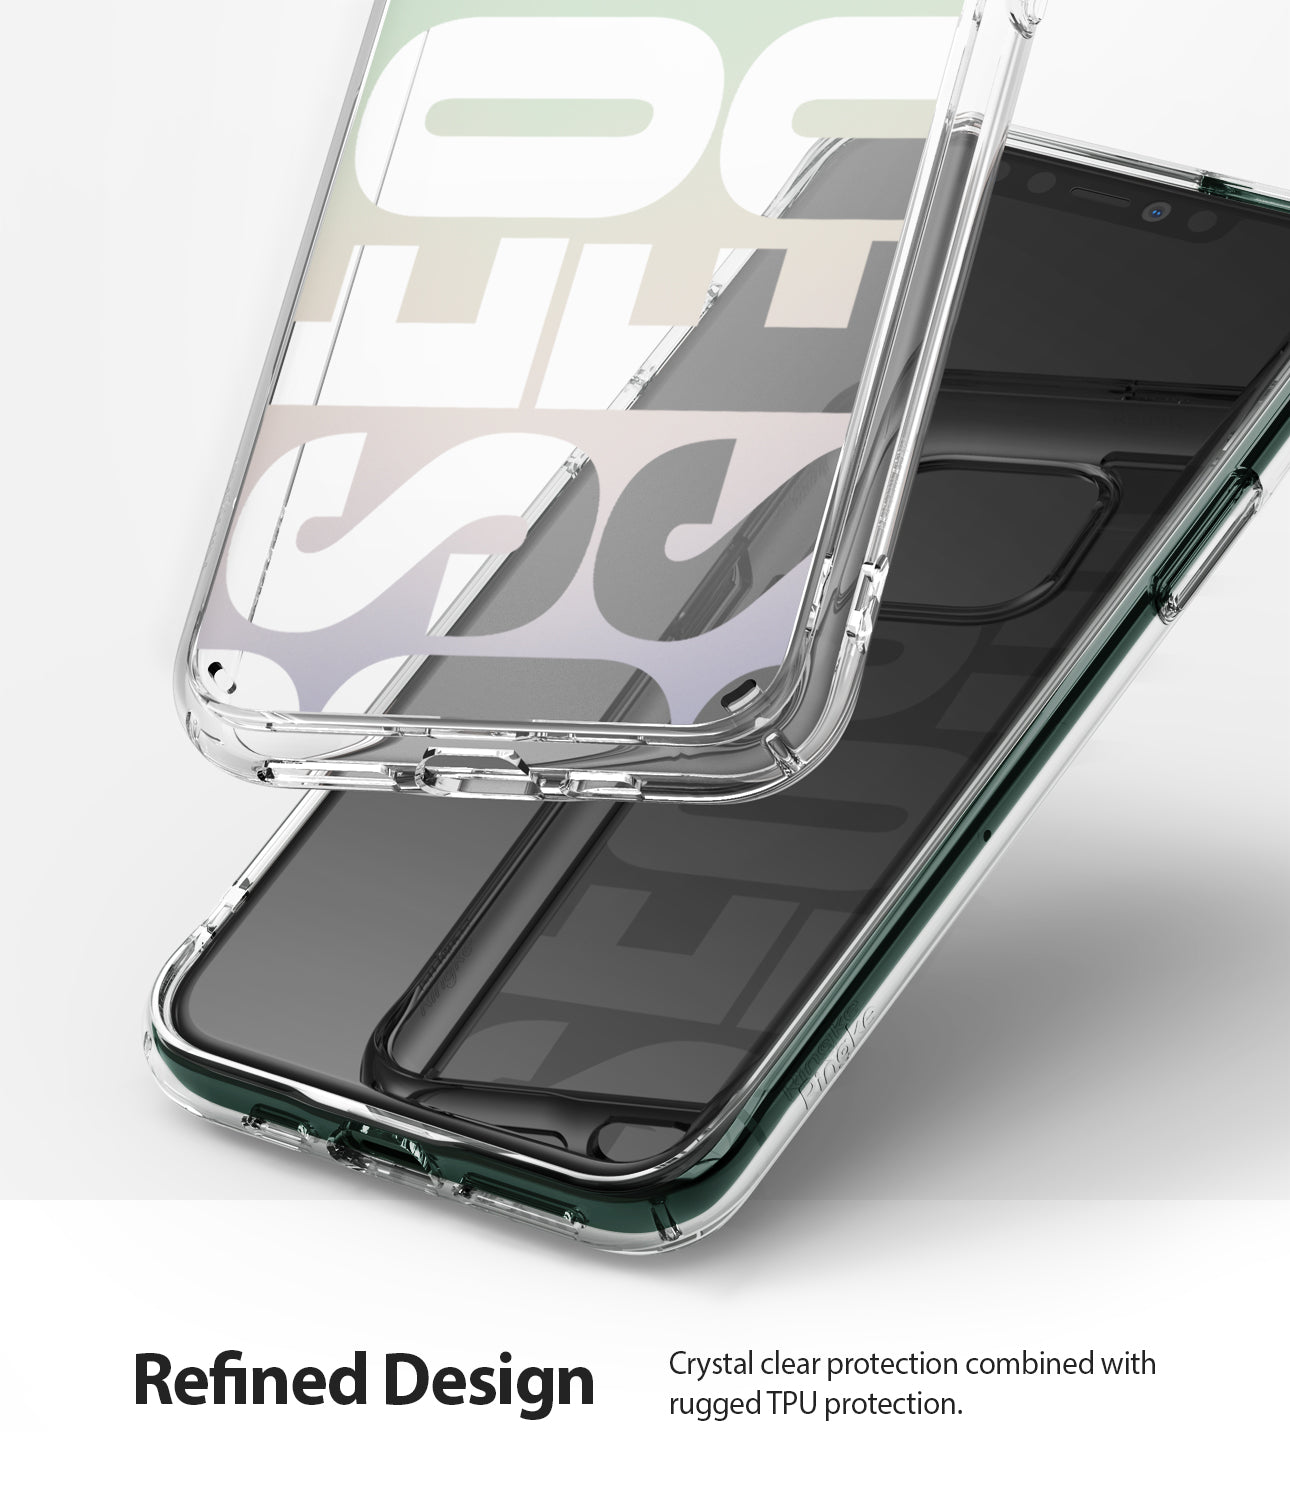 refined design - crystal clear protection combined with rugged tpu protection